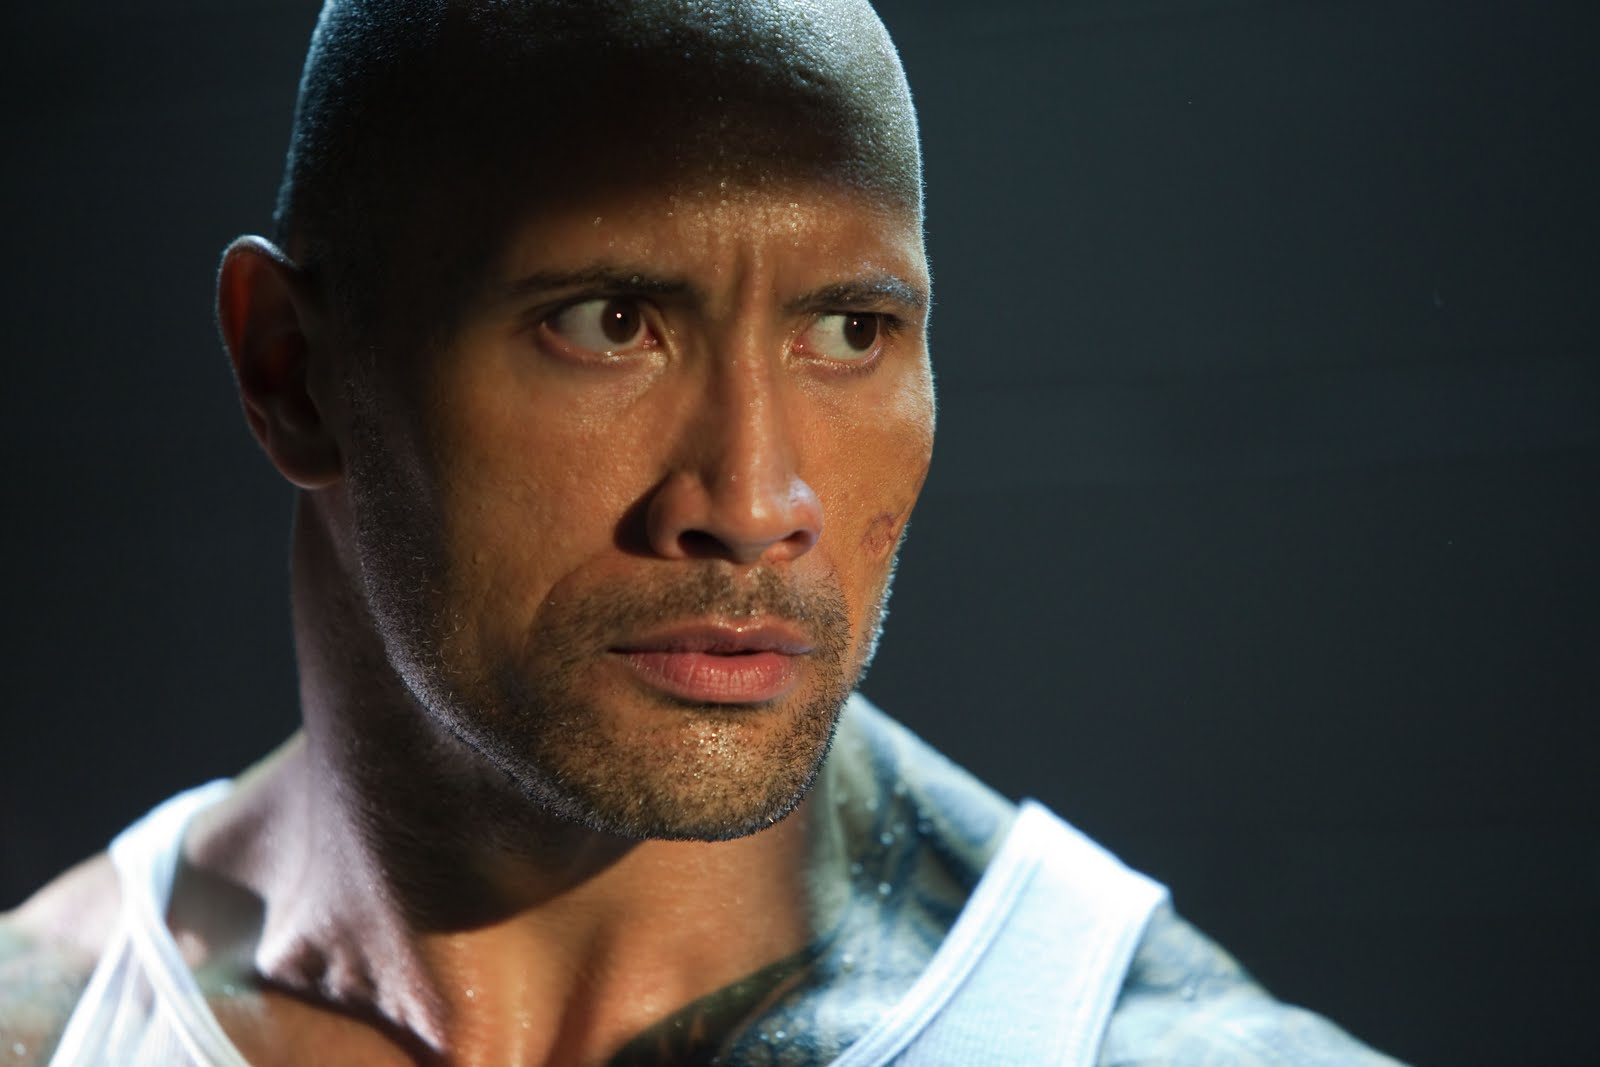 Images Of Dwayne The Rock Johnson: Dwayne Johnson Faster Movie : Teaser Trailer